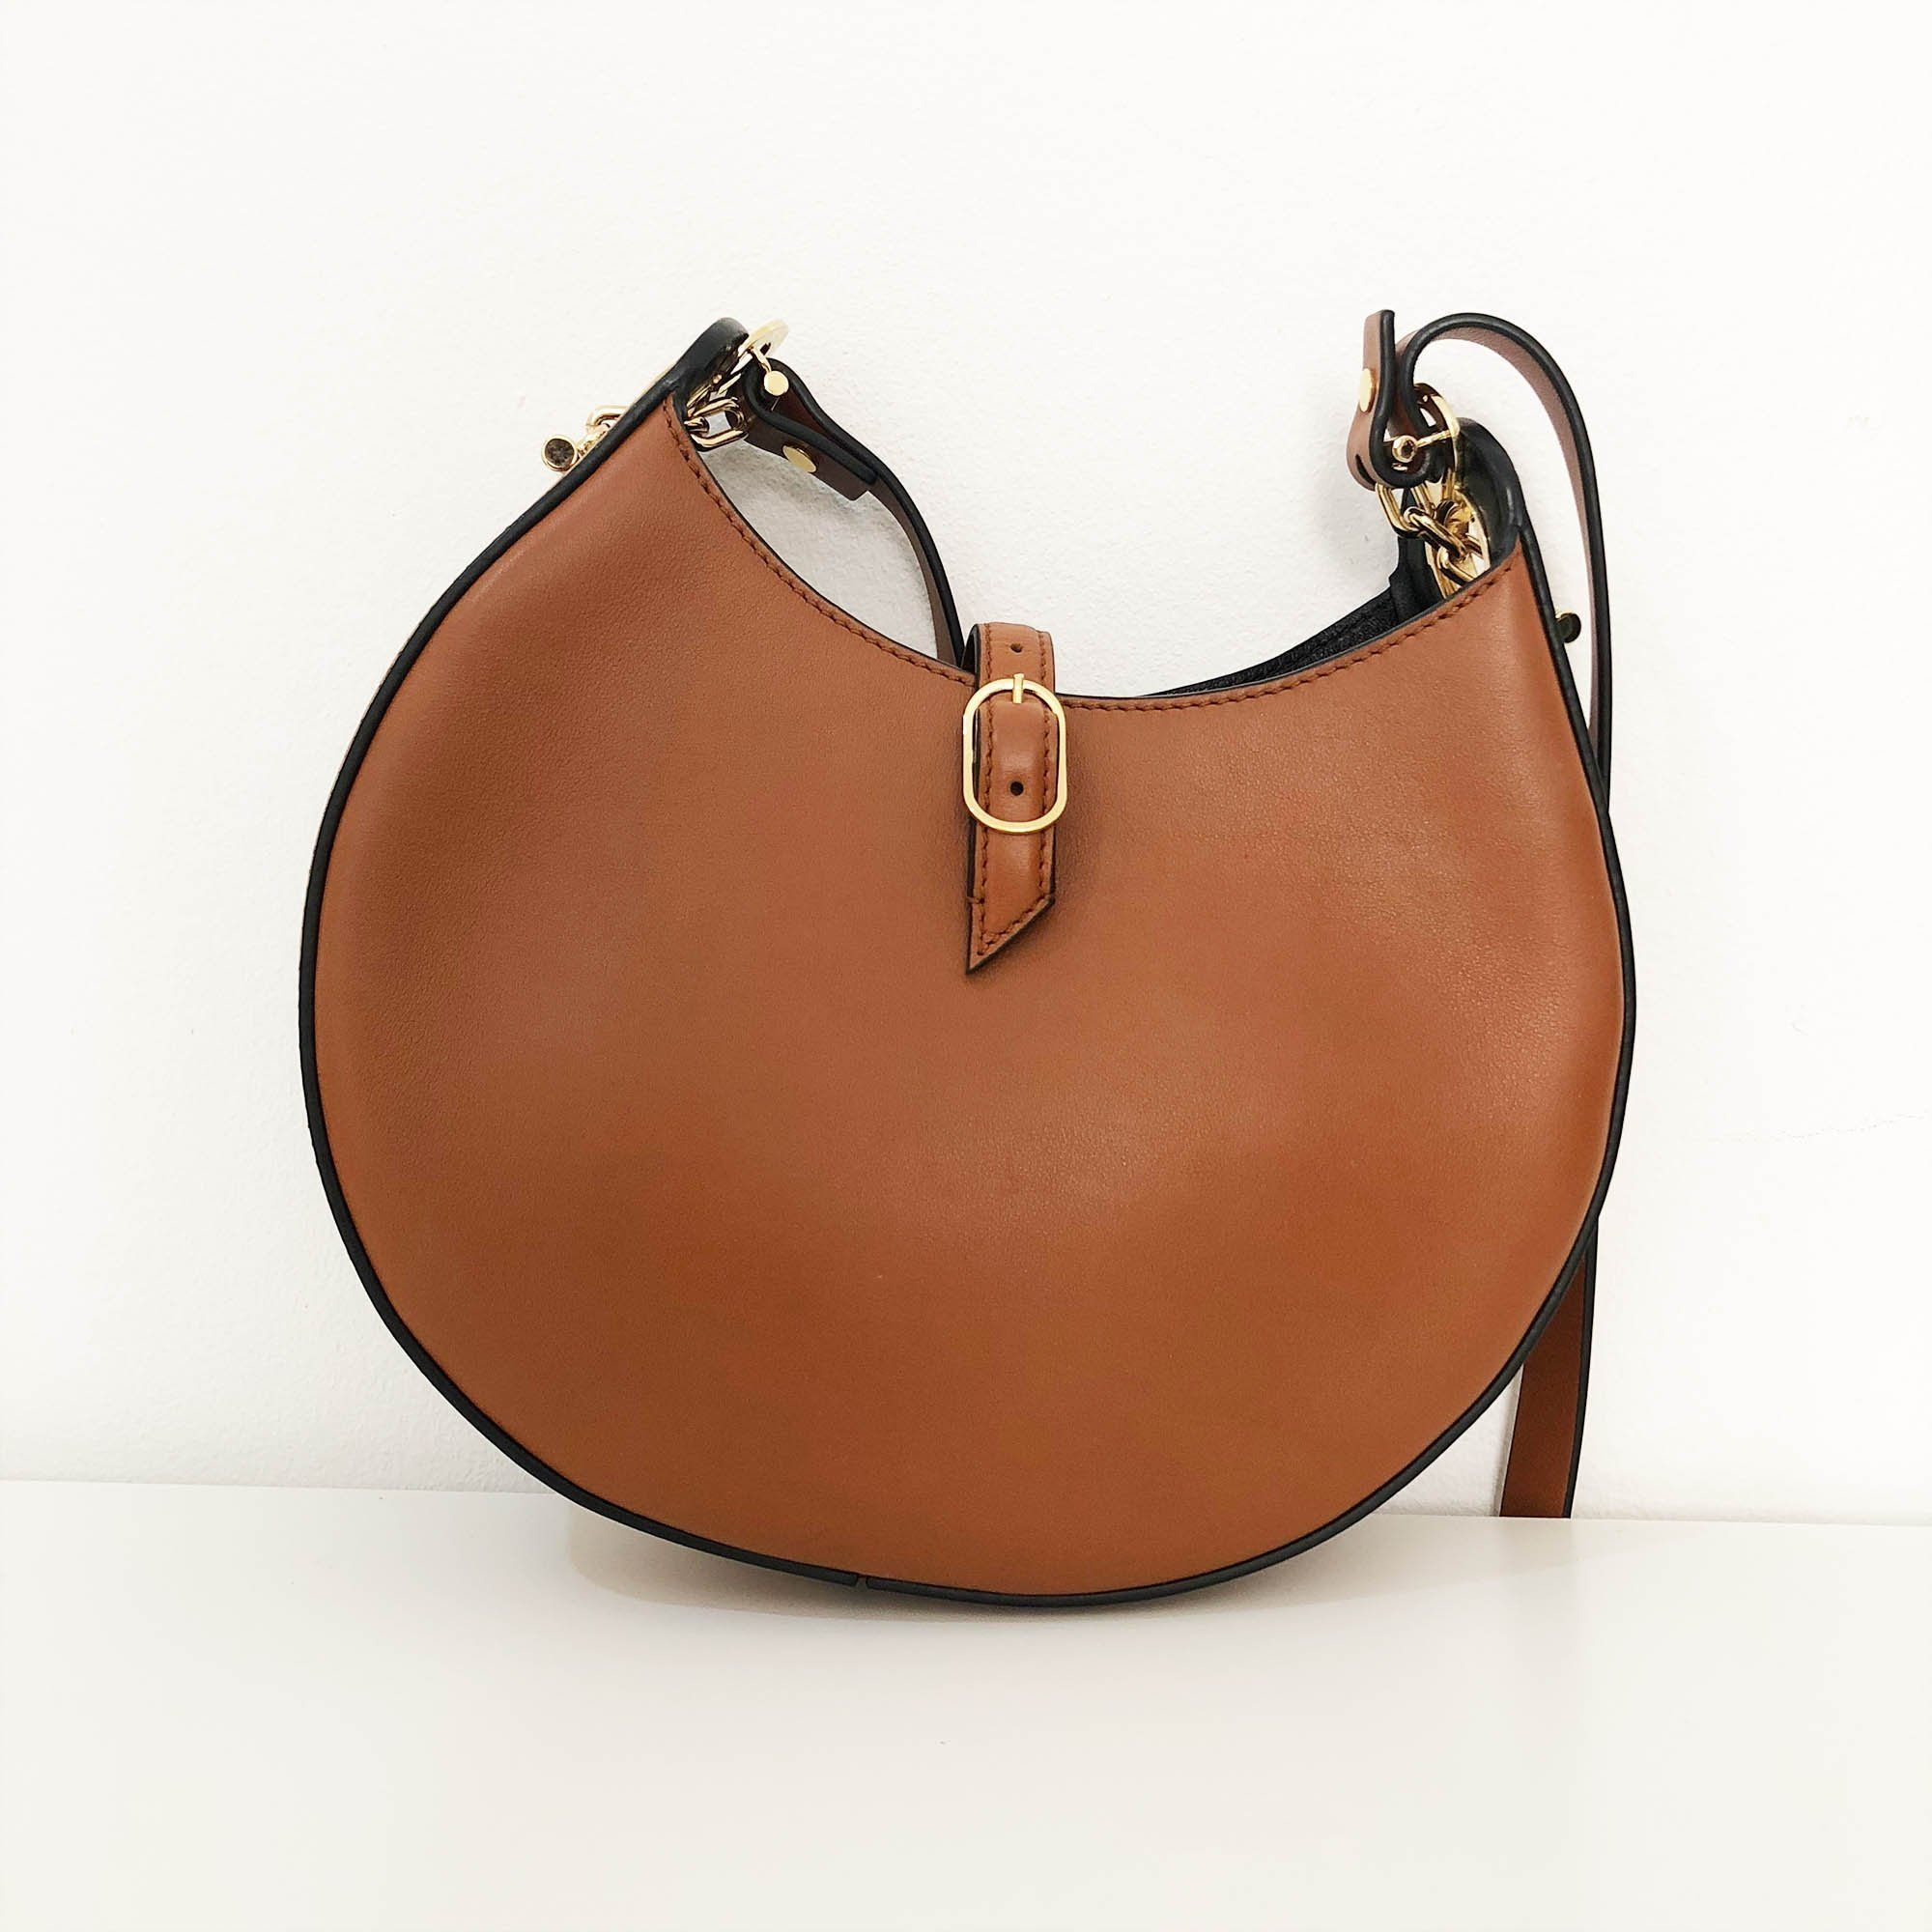 Loewe Joyce leather shoulder bag